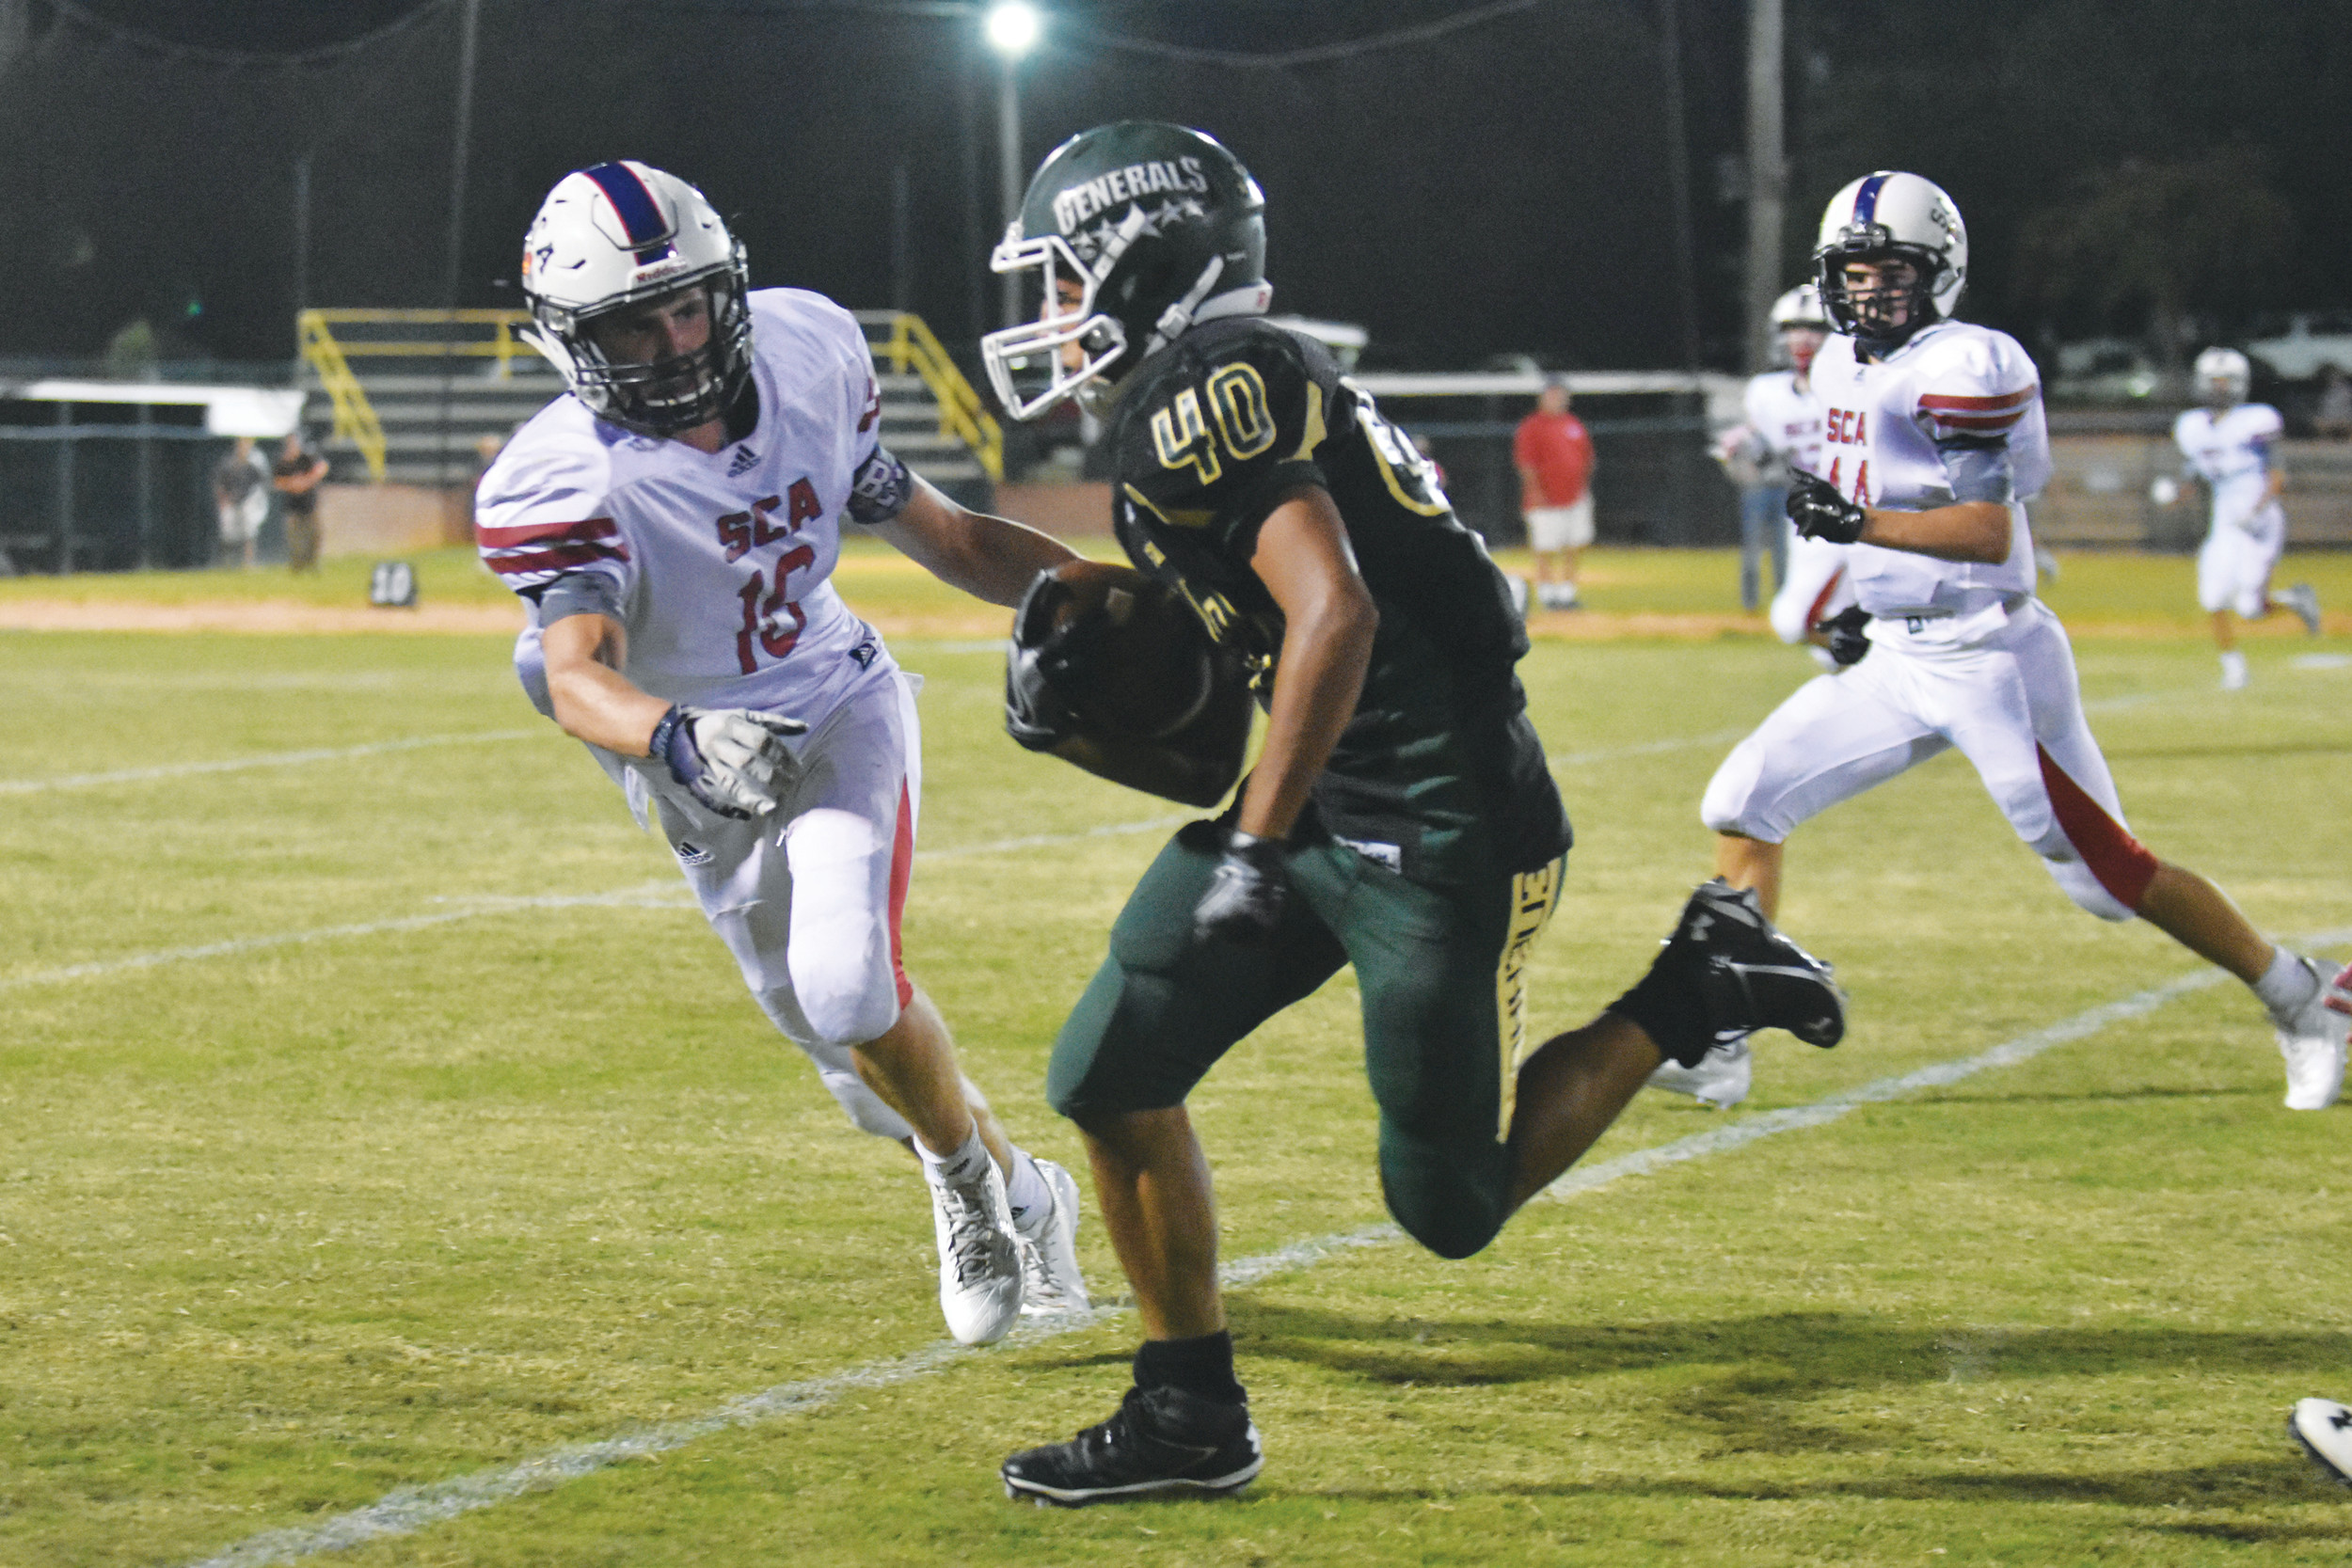 Thomas Sumter Academy's Richard Hutley (40) tries to elude an oncoming defender during the Generals' 50-34 loss to Spartanburg Christian on Friday at General Field in Dalzell.